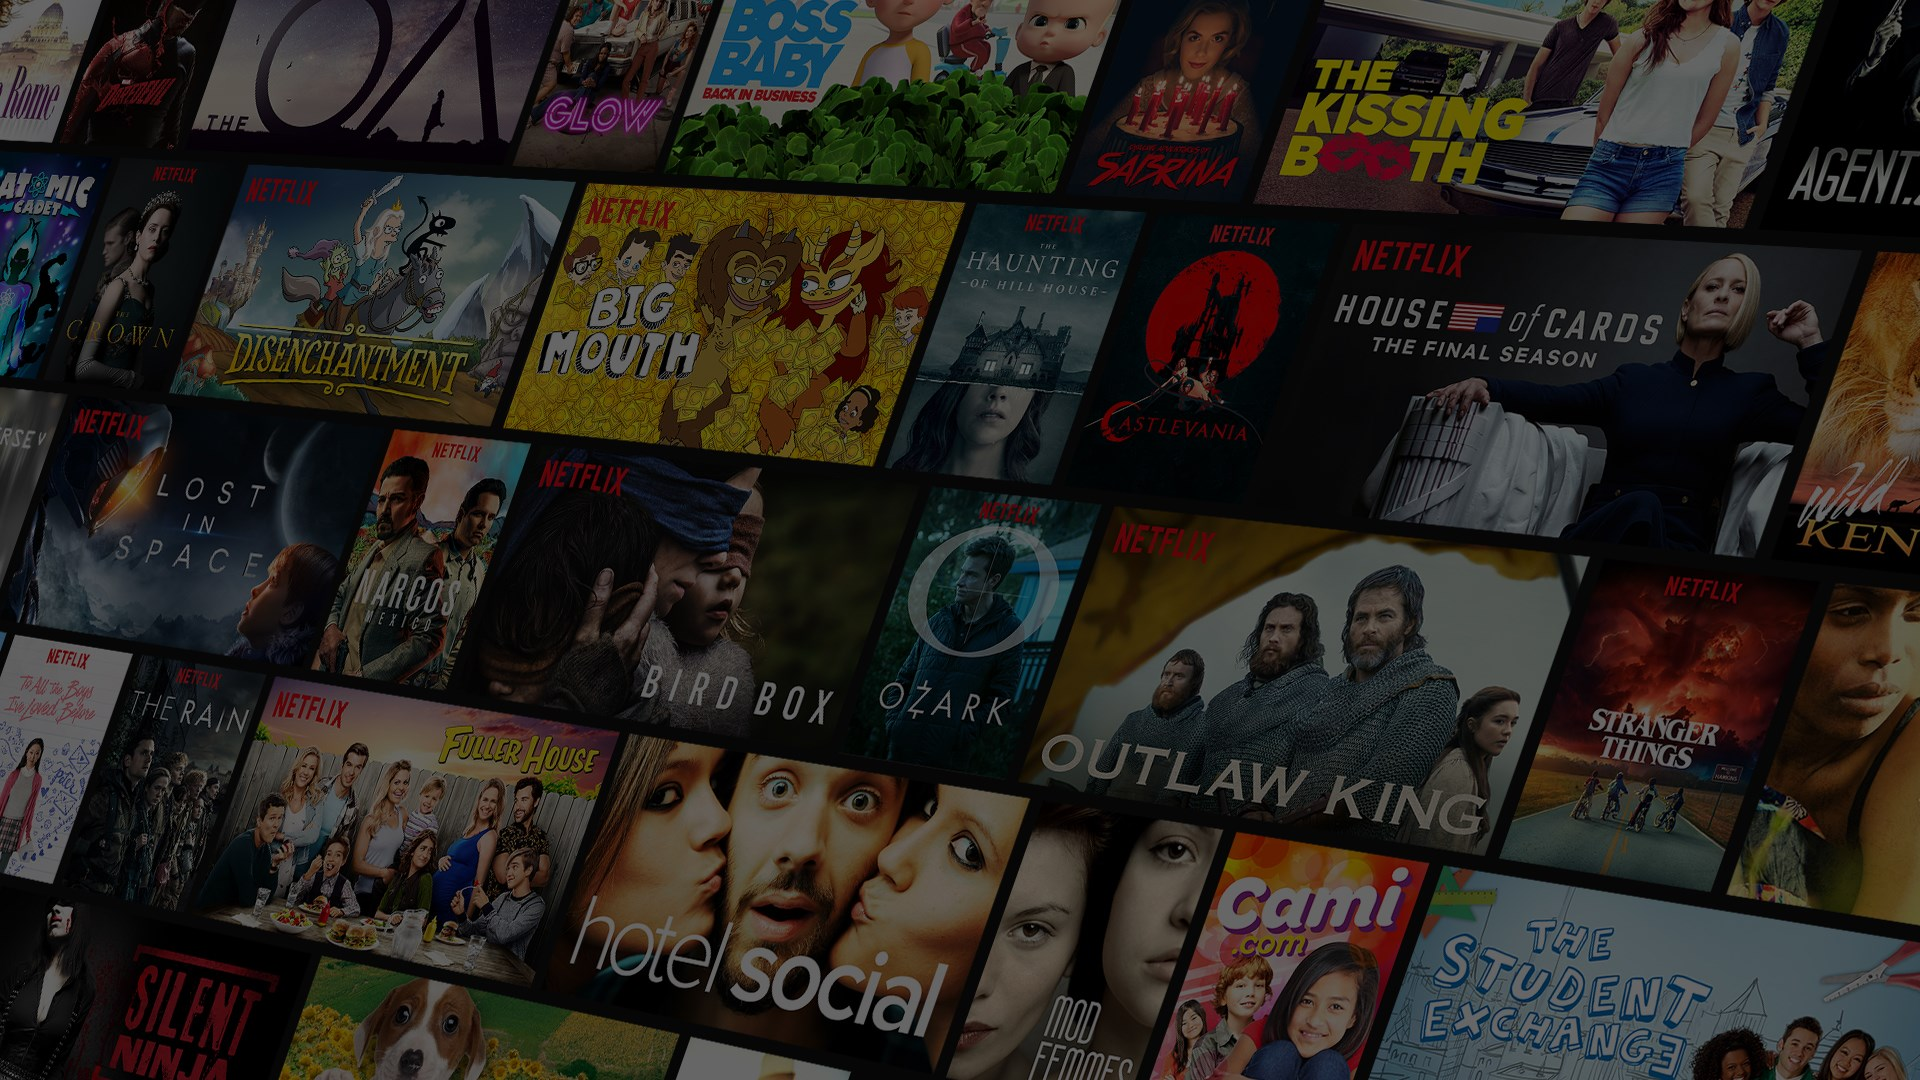 netflix windows 10 app download offline